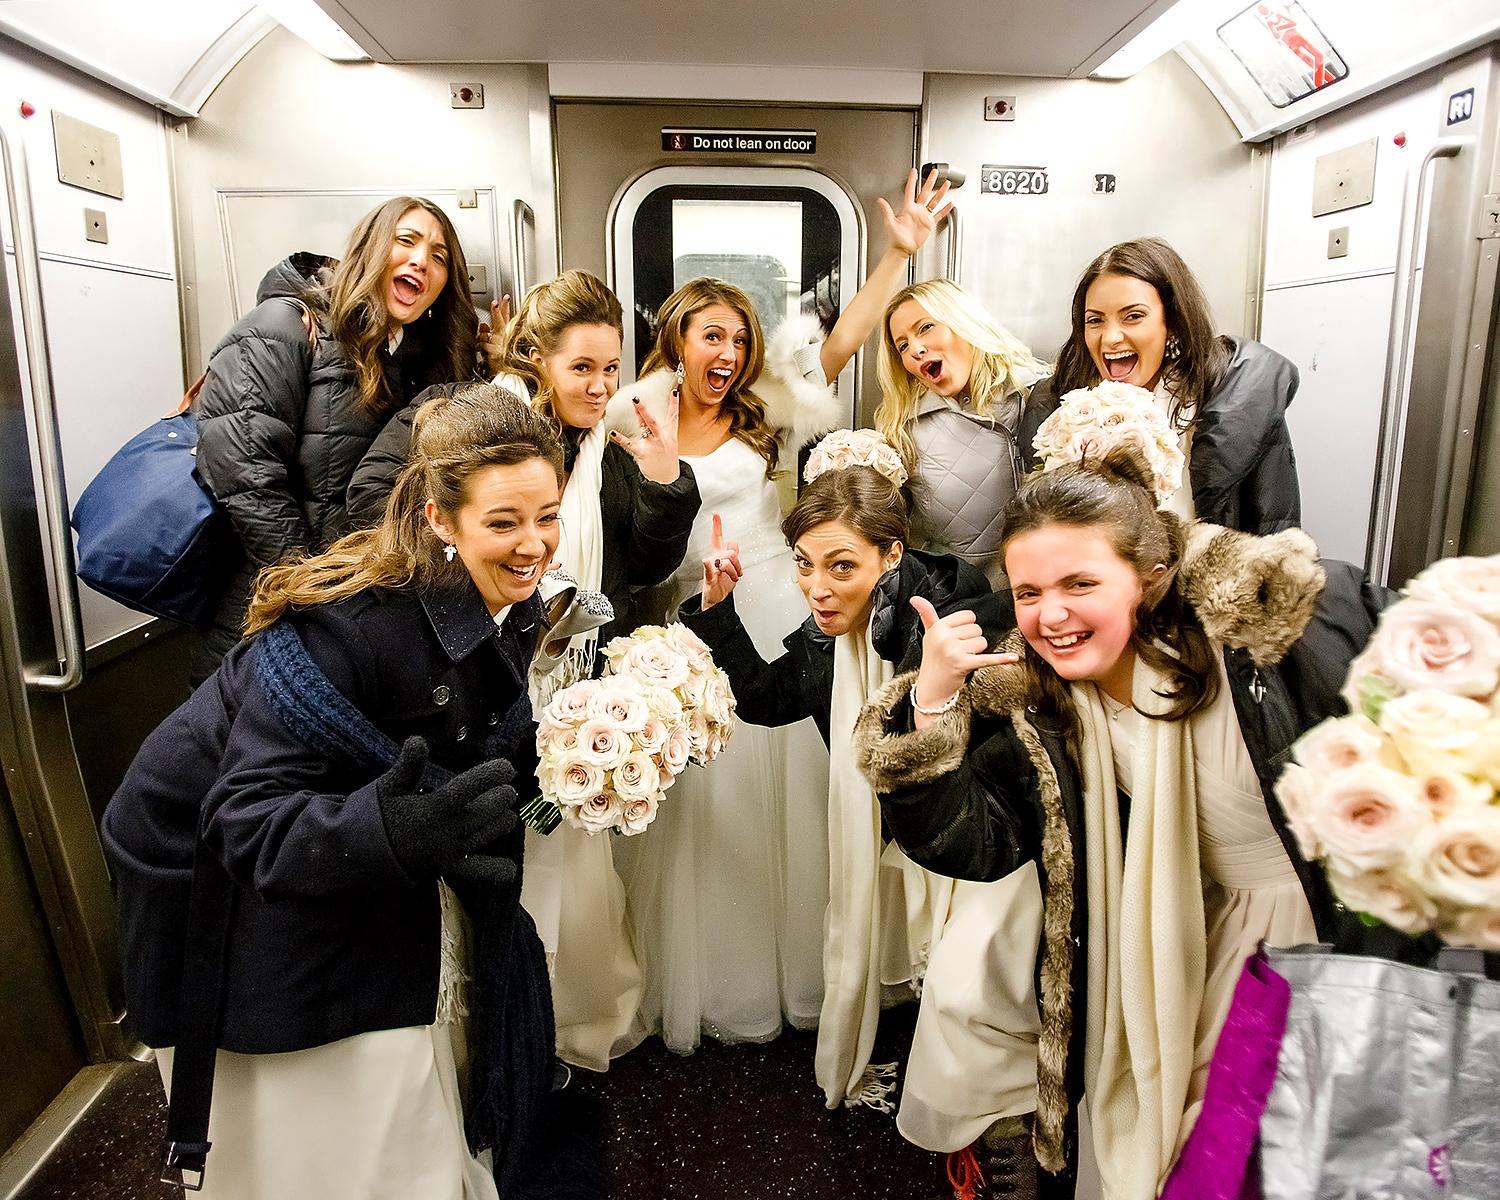 Ashley and bridesmaids ride the subway during blizzard